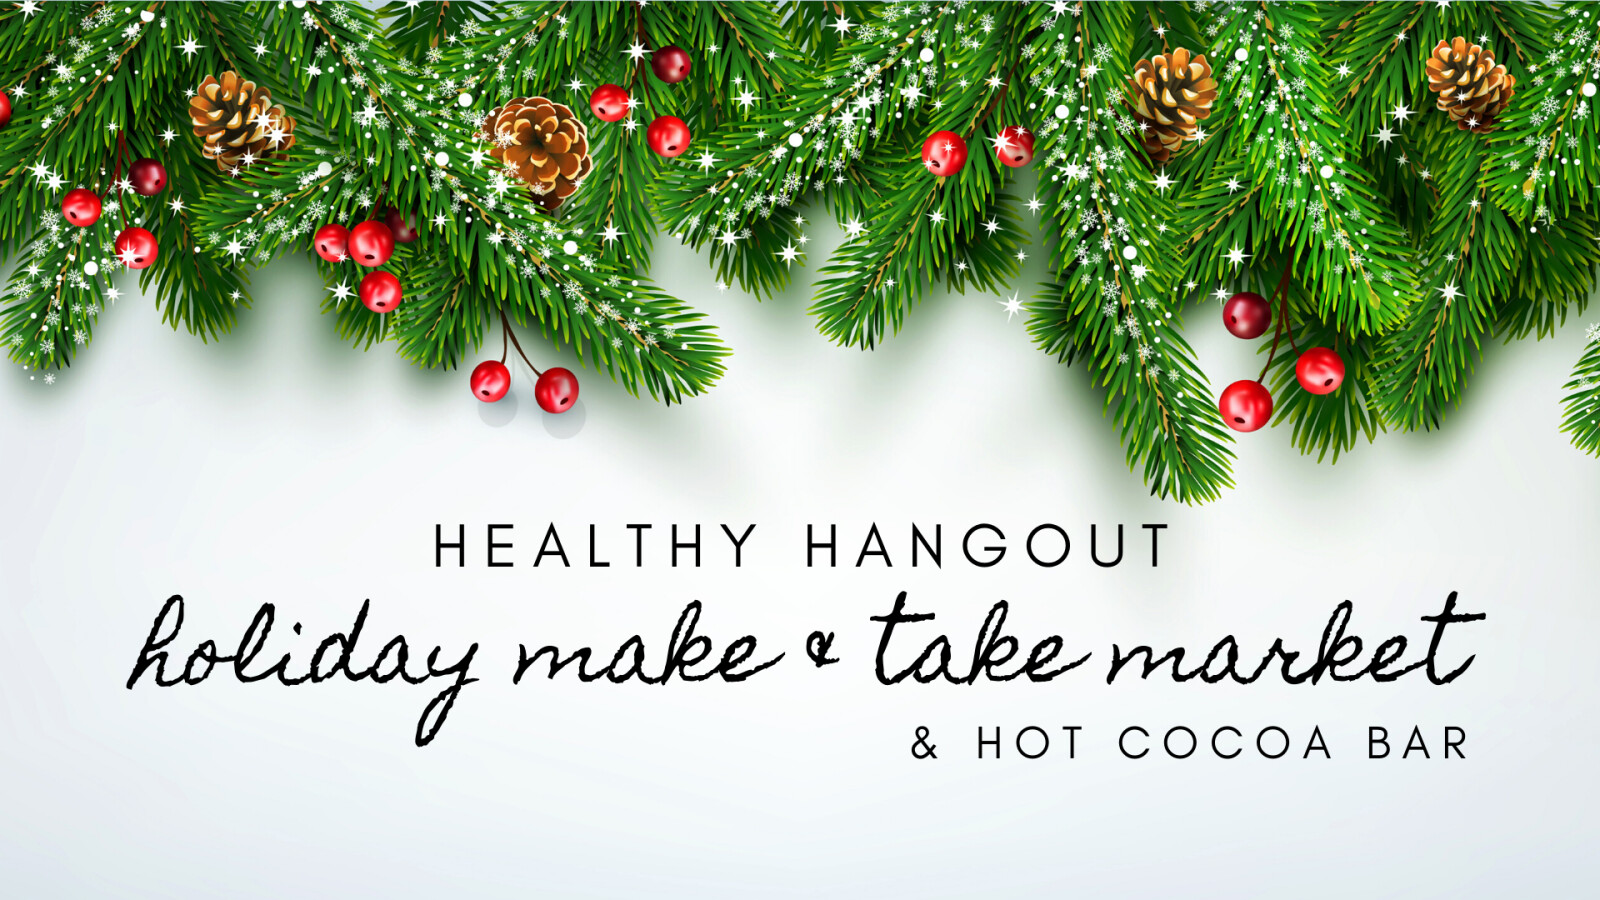 December Healthy Hangout - Make & Take Market